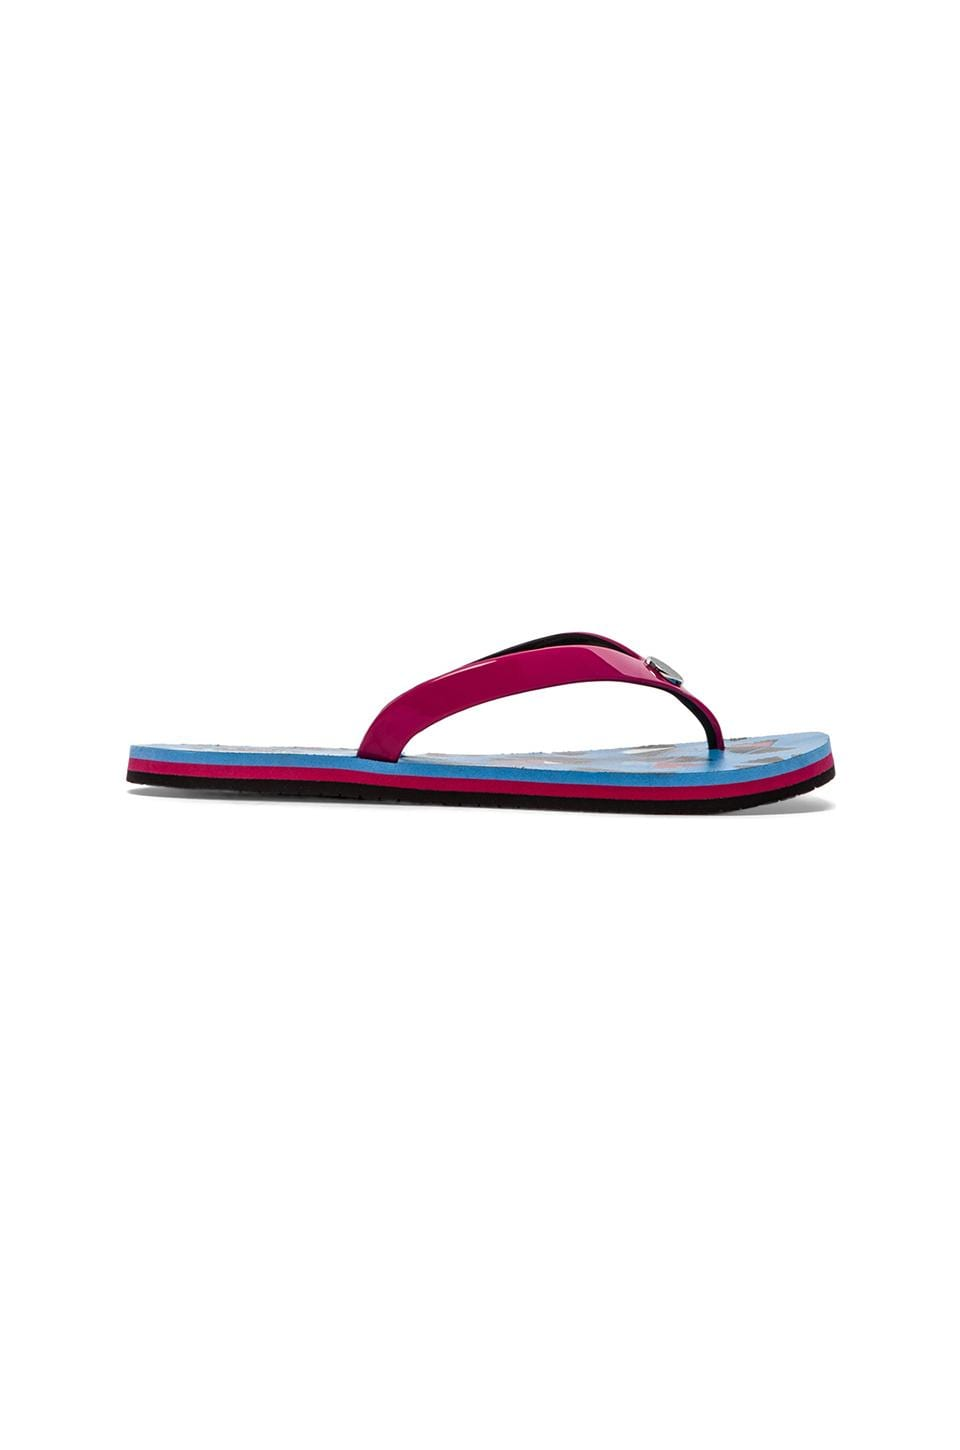 Marc by Marc Jacobs Rubber Flip Flop in Blue Multi & Raspberry